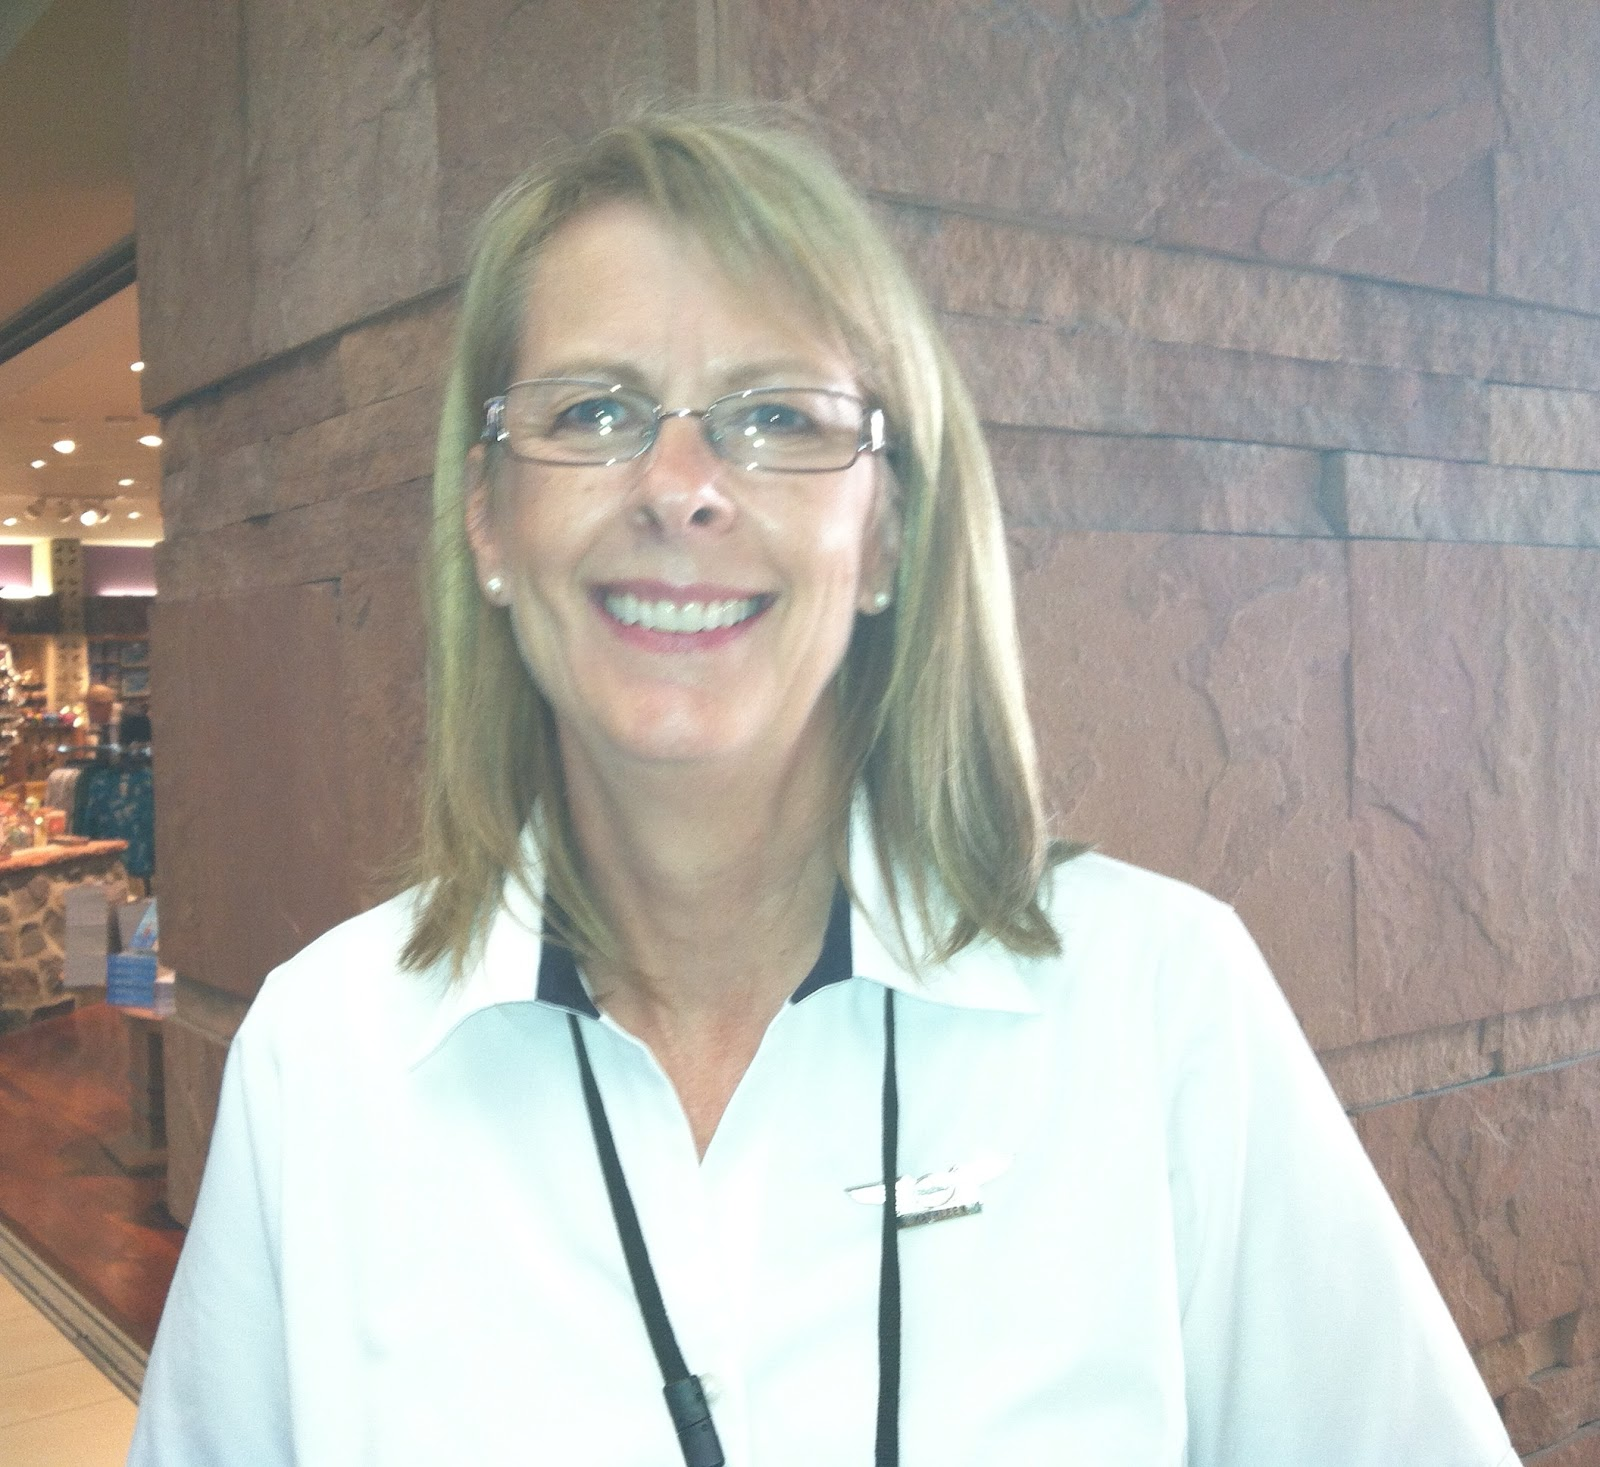 meet kathleen kober flight attendant the midlife guru lay offs eminent for your current job kids grown and gone would those be strong enough reasons for you to totally change your way of life